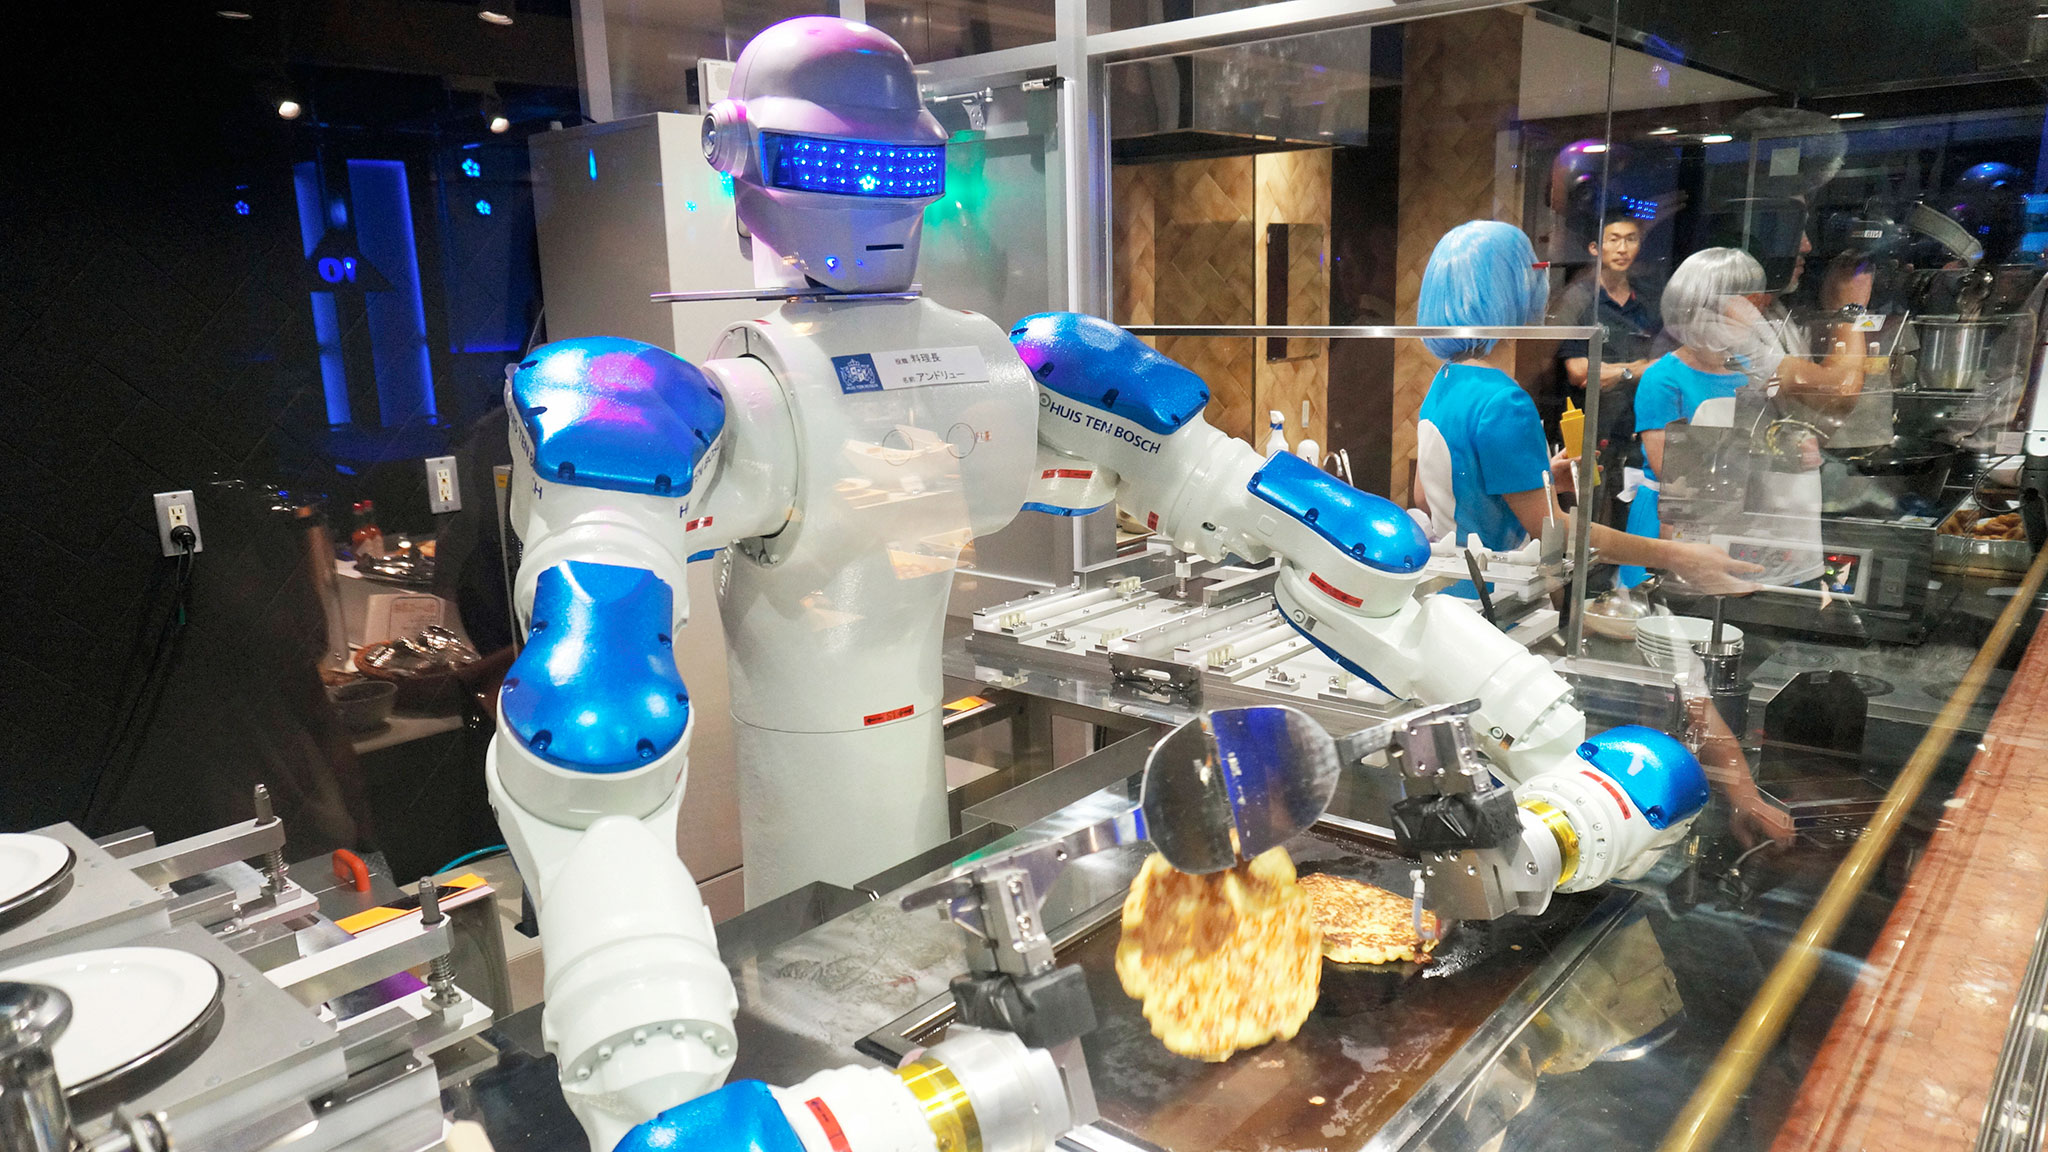 Japans robot chefs aim to show how far automation can go